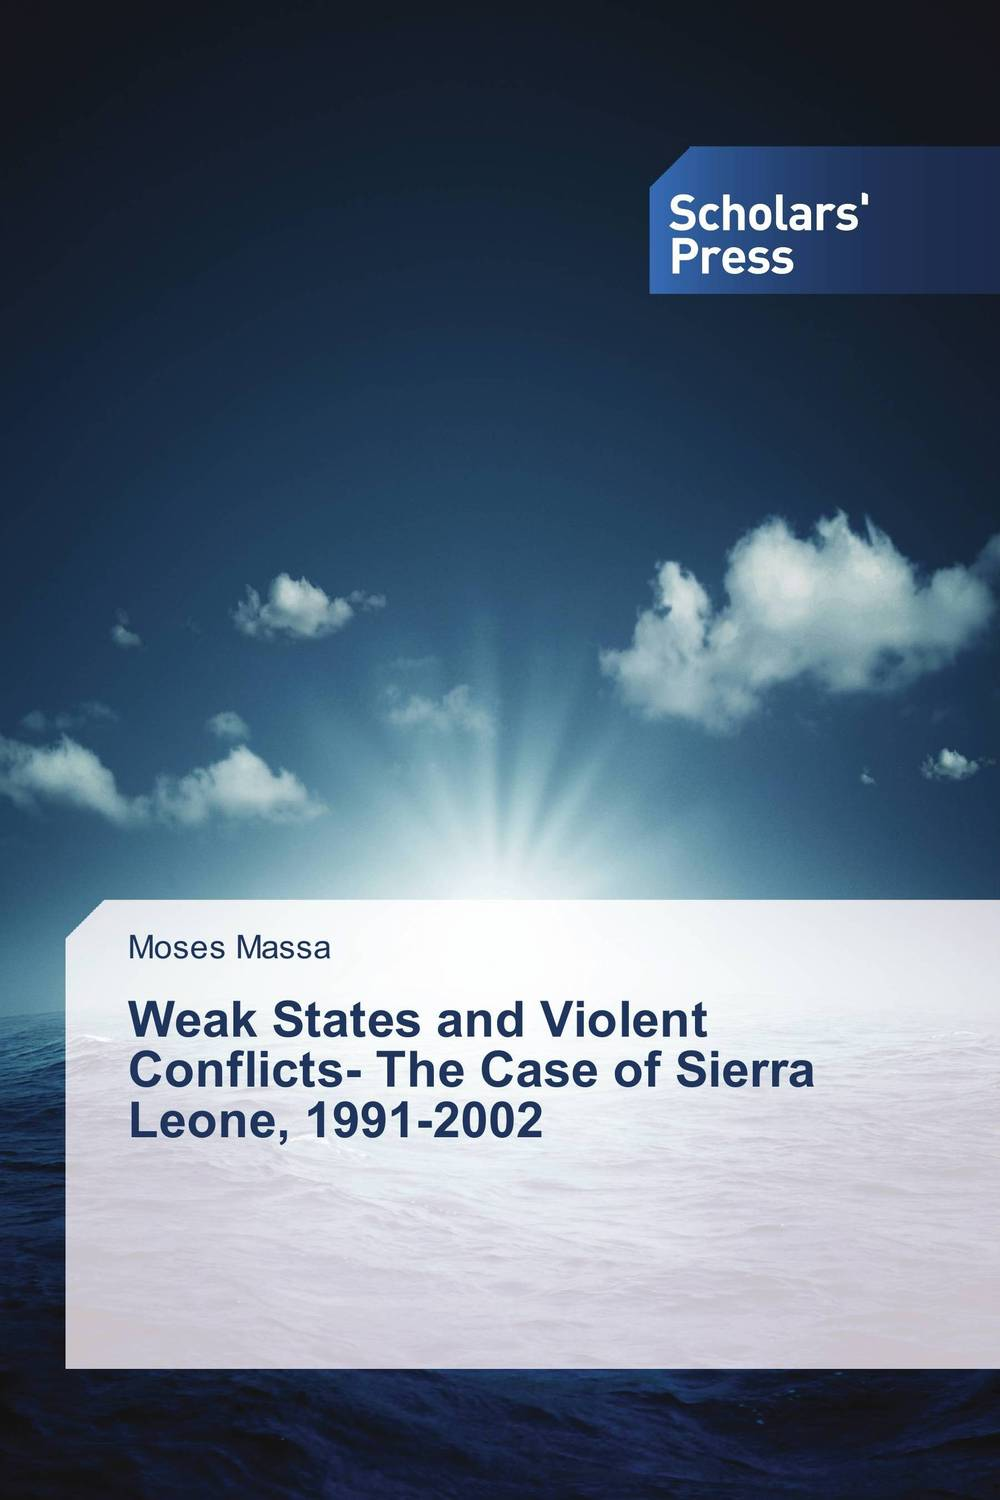 Weak States and Violent Conflicts- The Case of Sierra Leone, 1991-2002 victorian america and the civil war